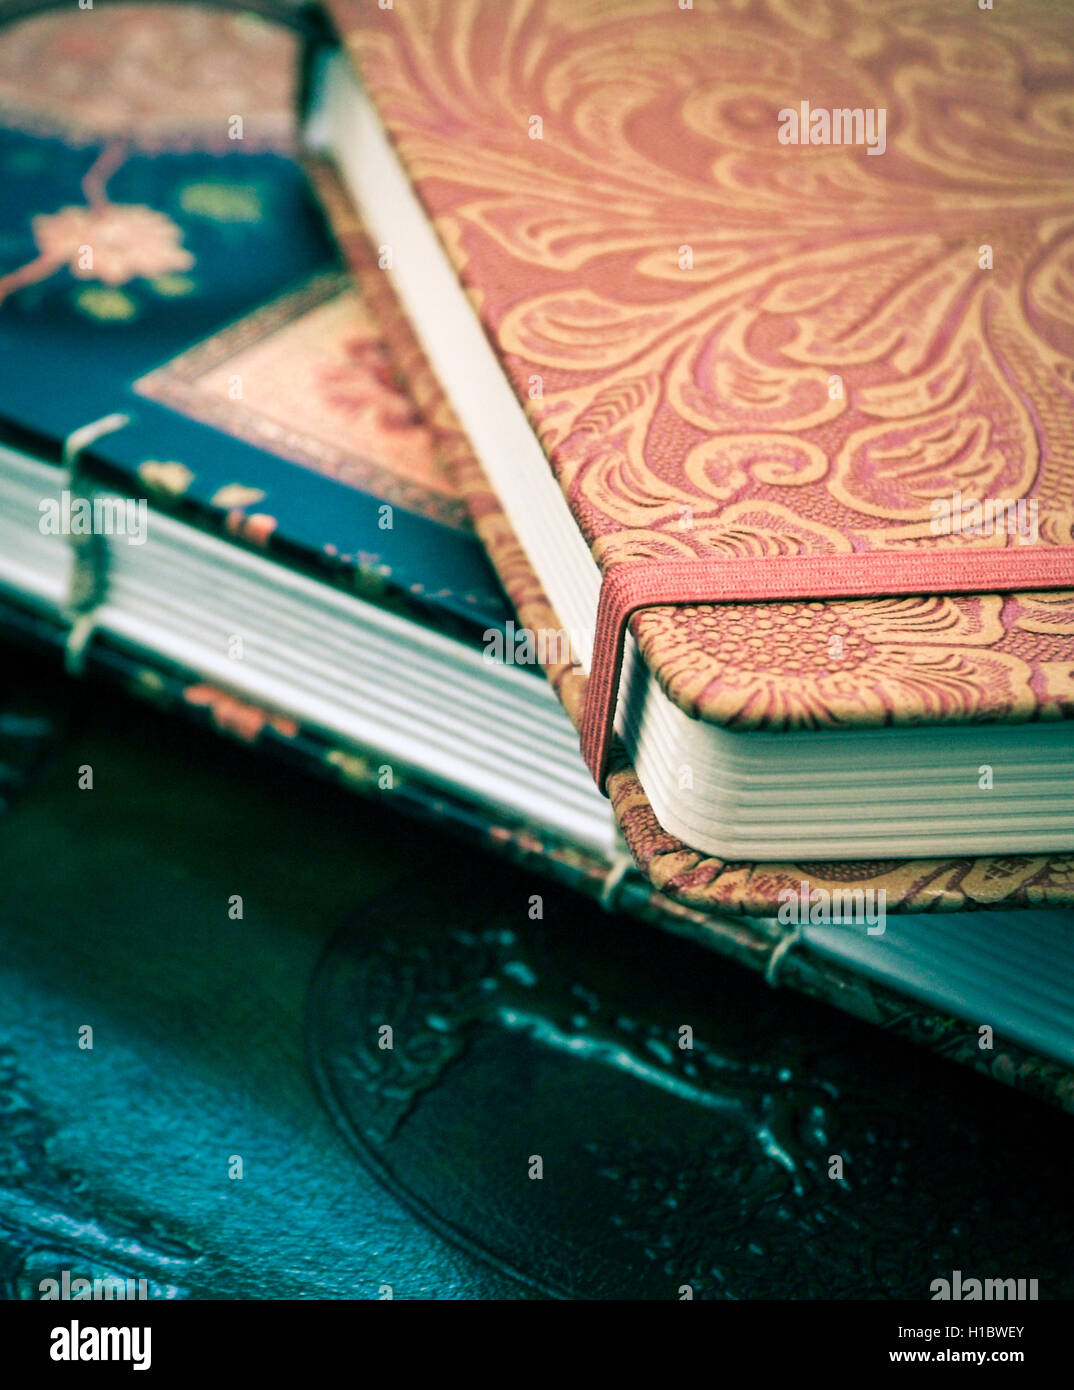 a pile of various beautiful journals and diaries - Stock Image